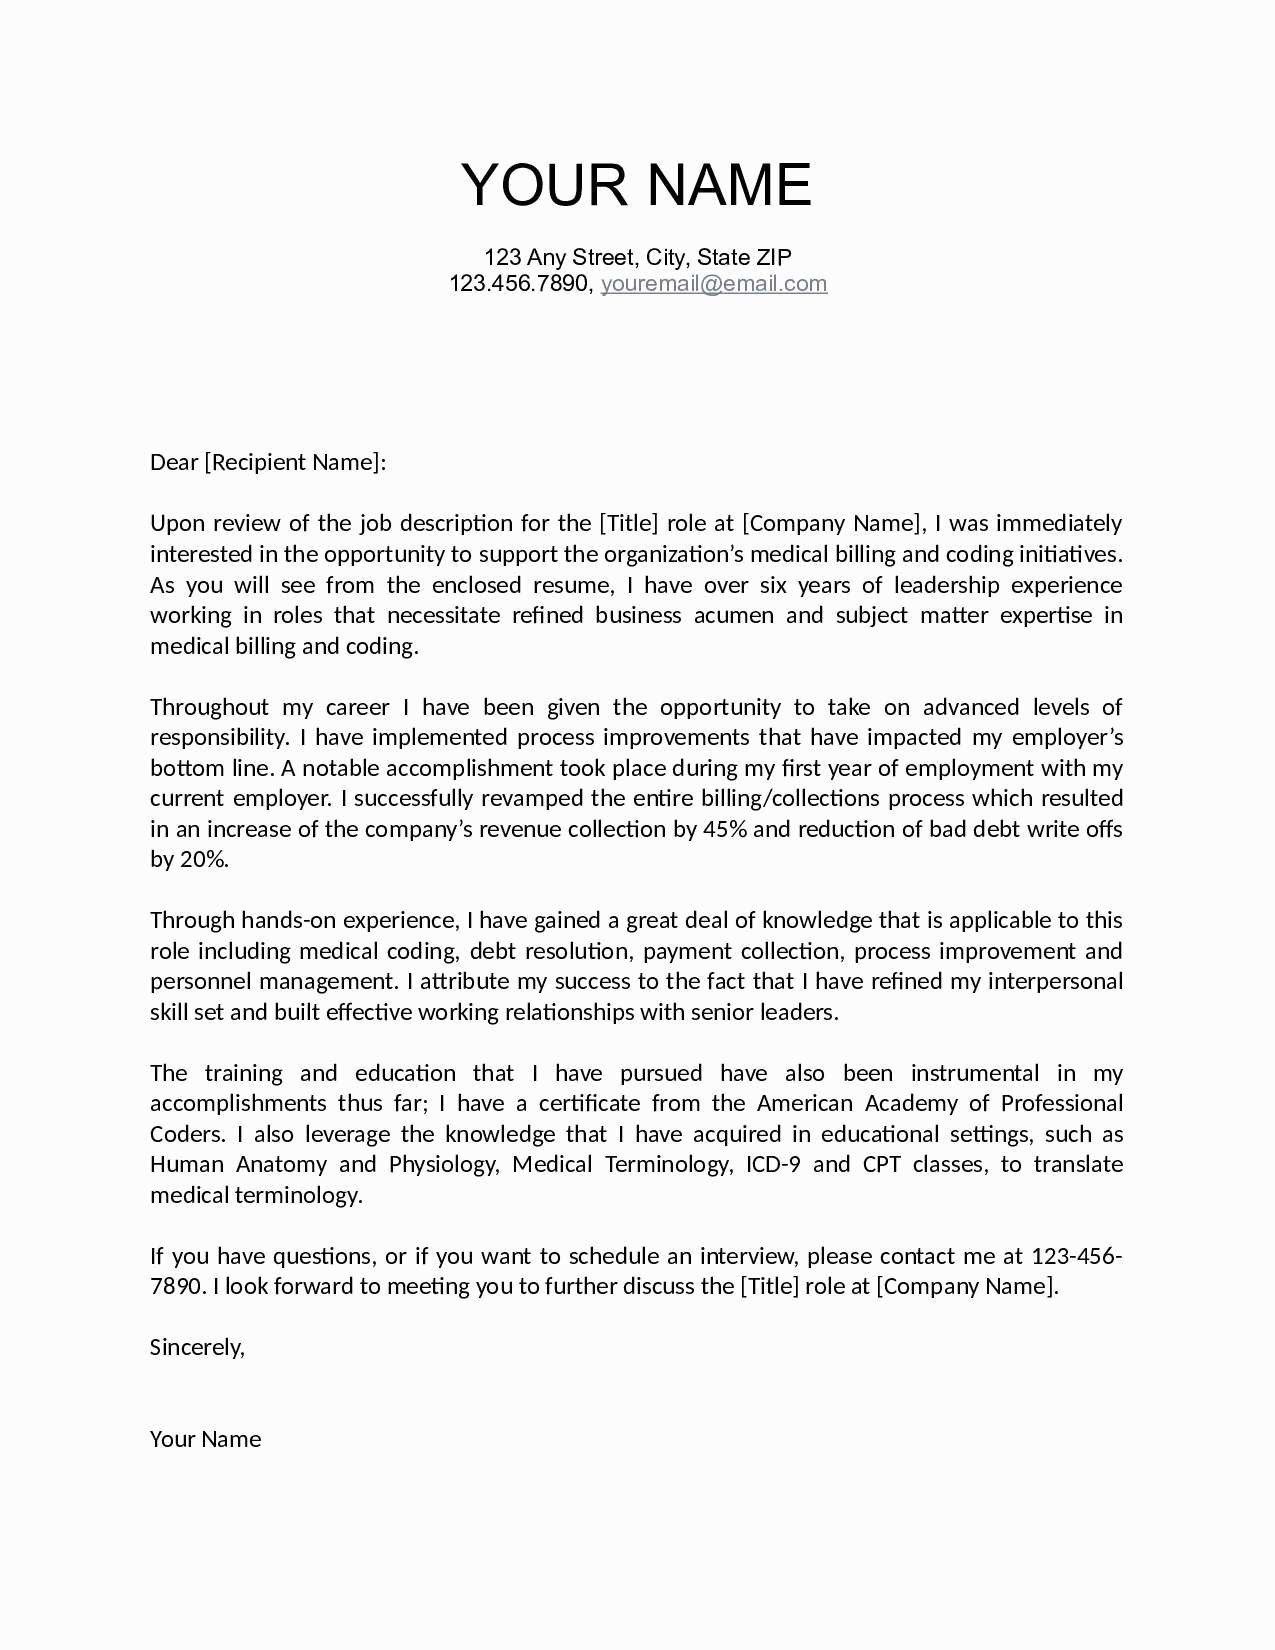 Support Letter Template - Simple Resume Letter format